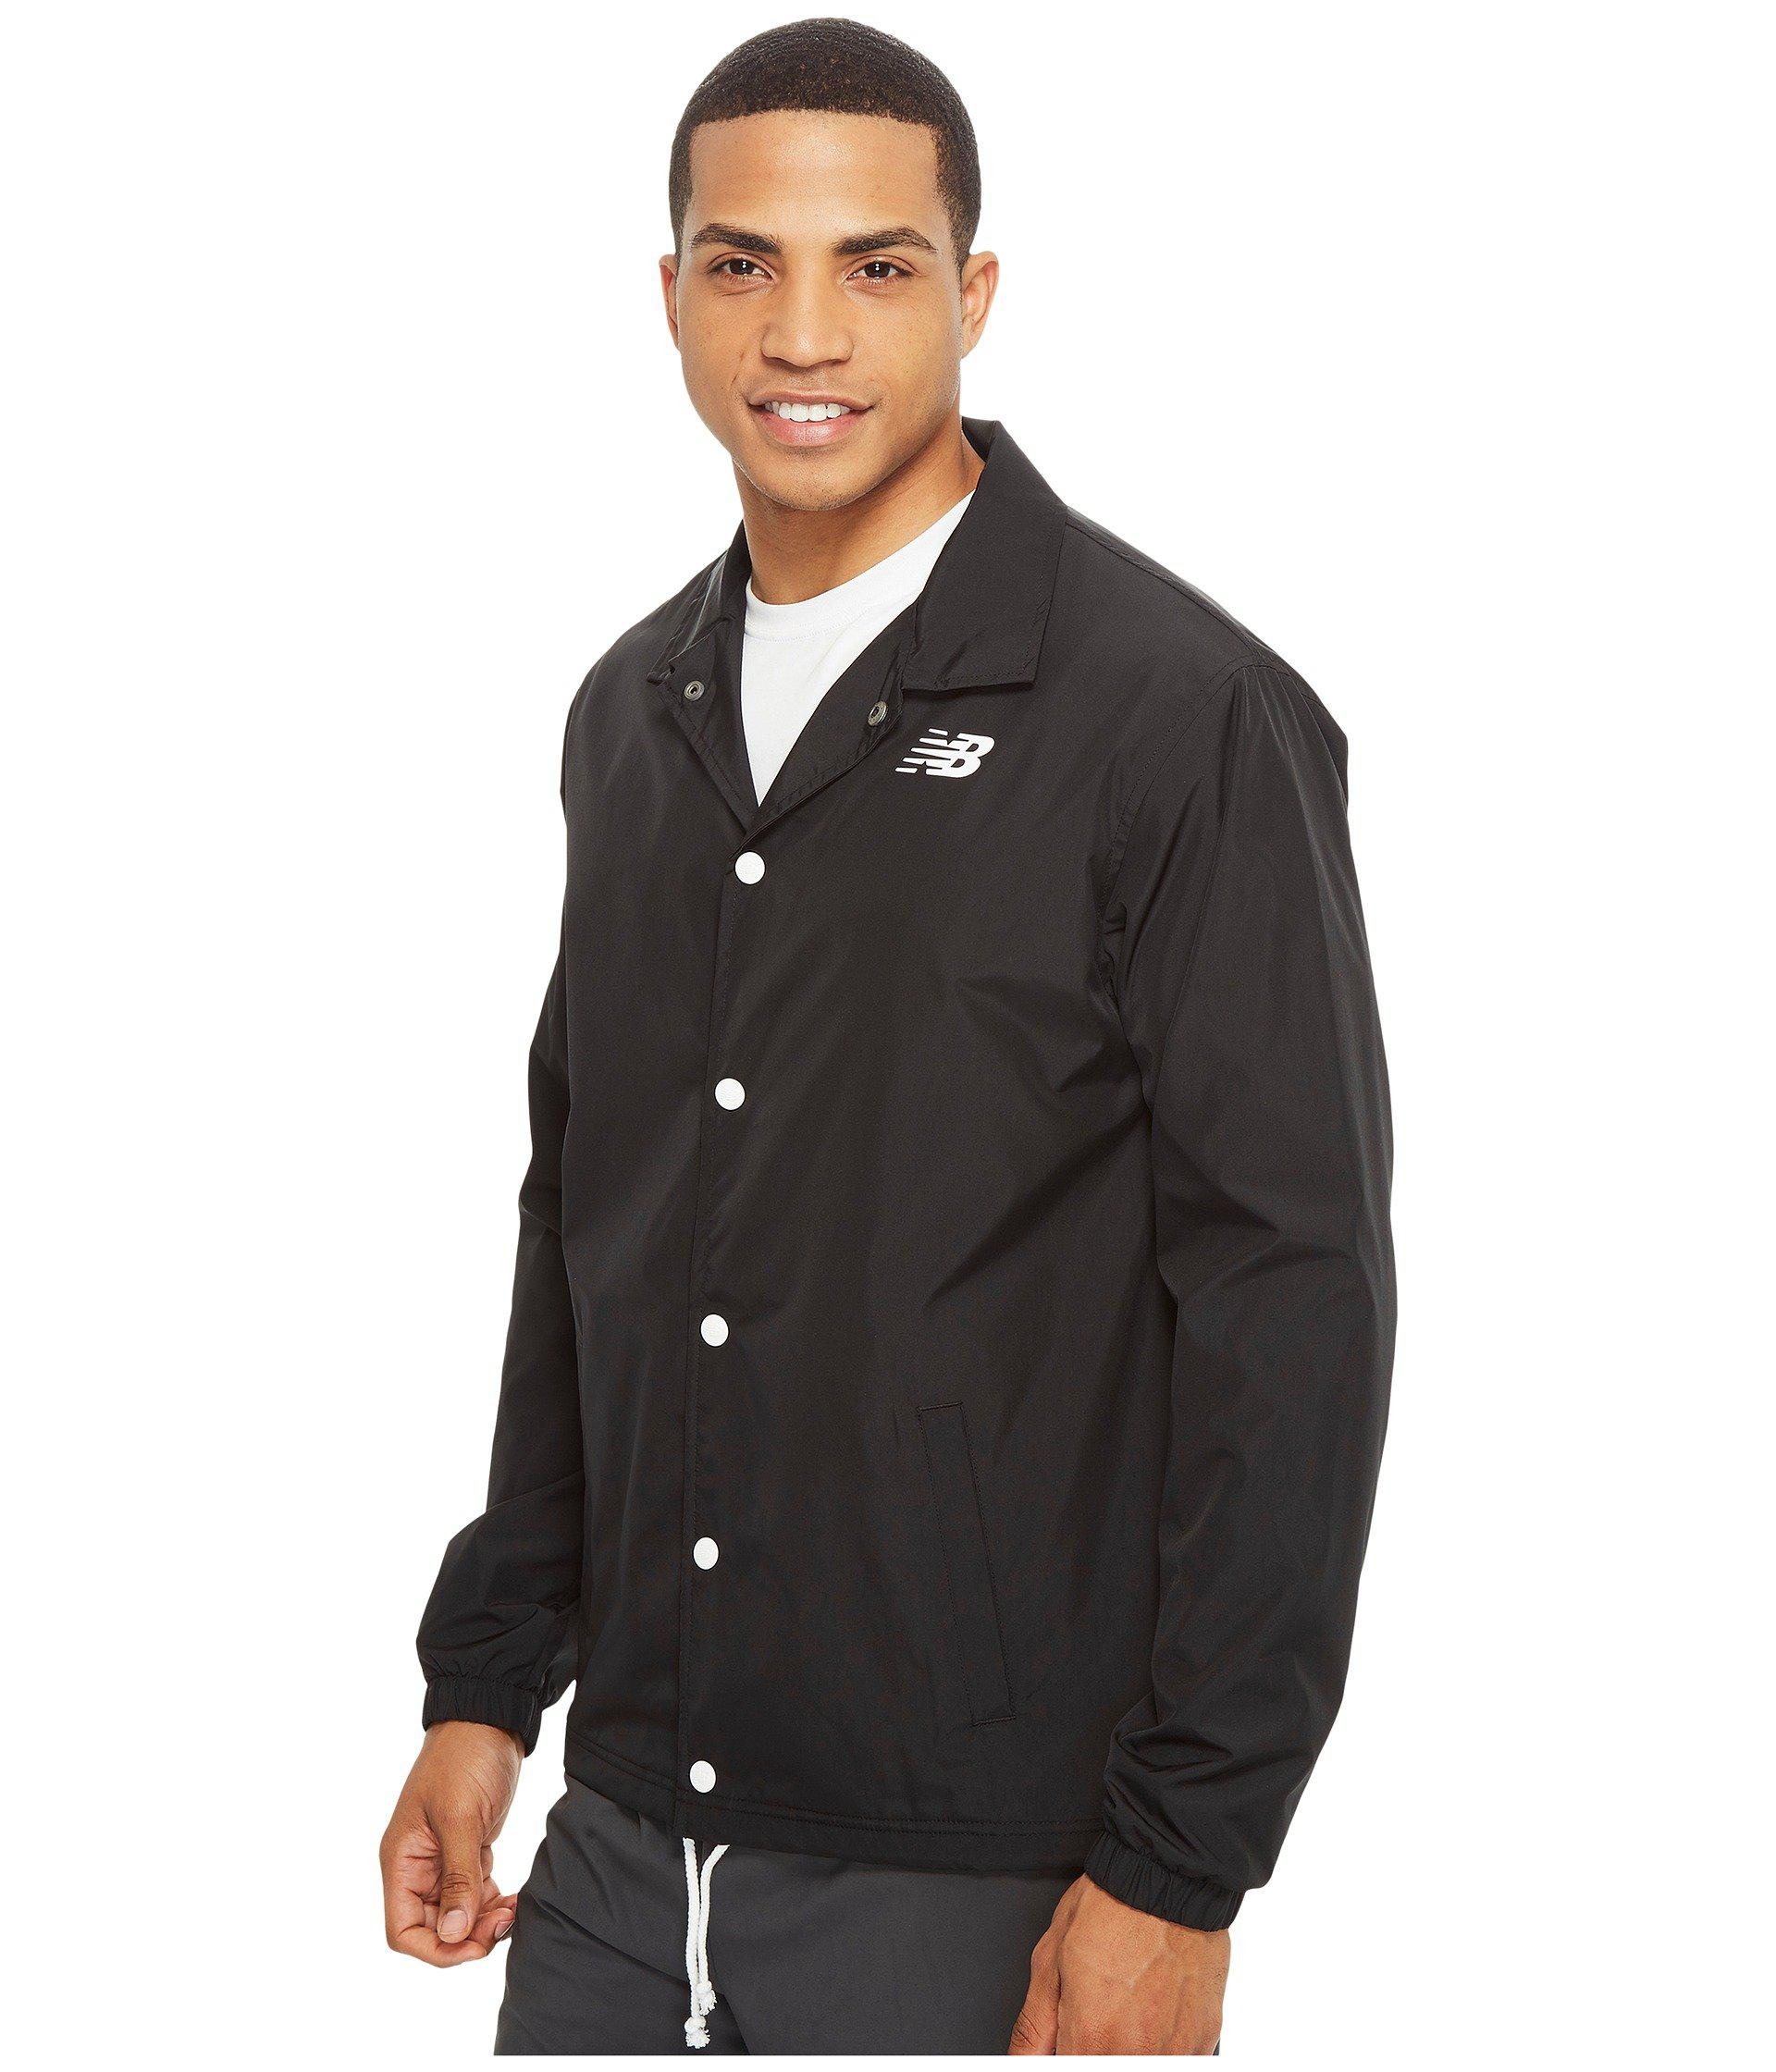 04d4d85e5 New Balance Classic Coaches Jacket in Black for Men - Lyst